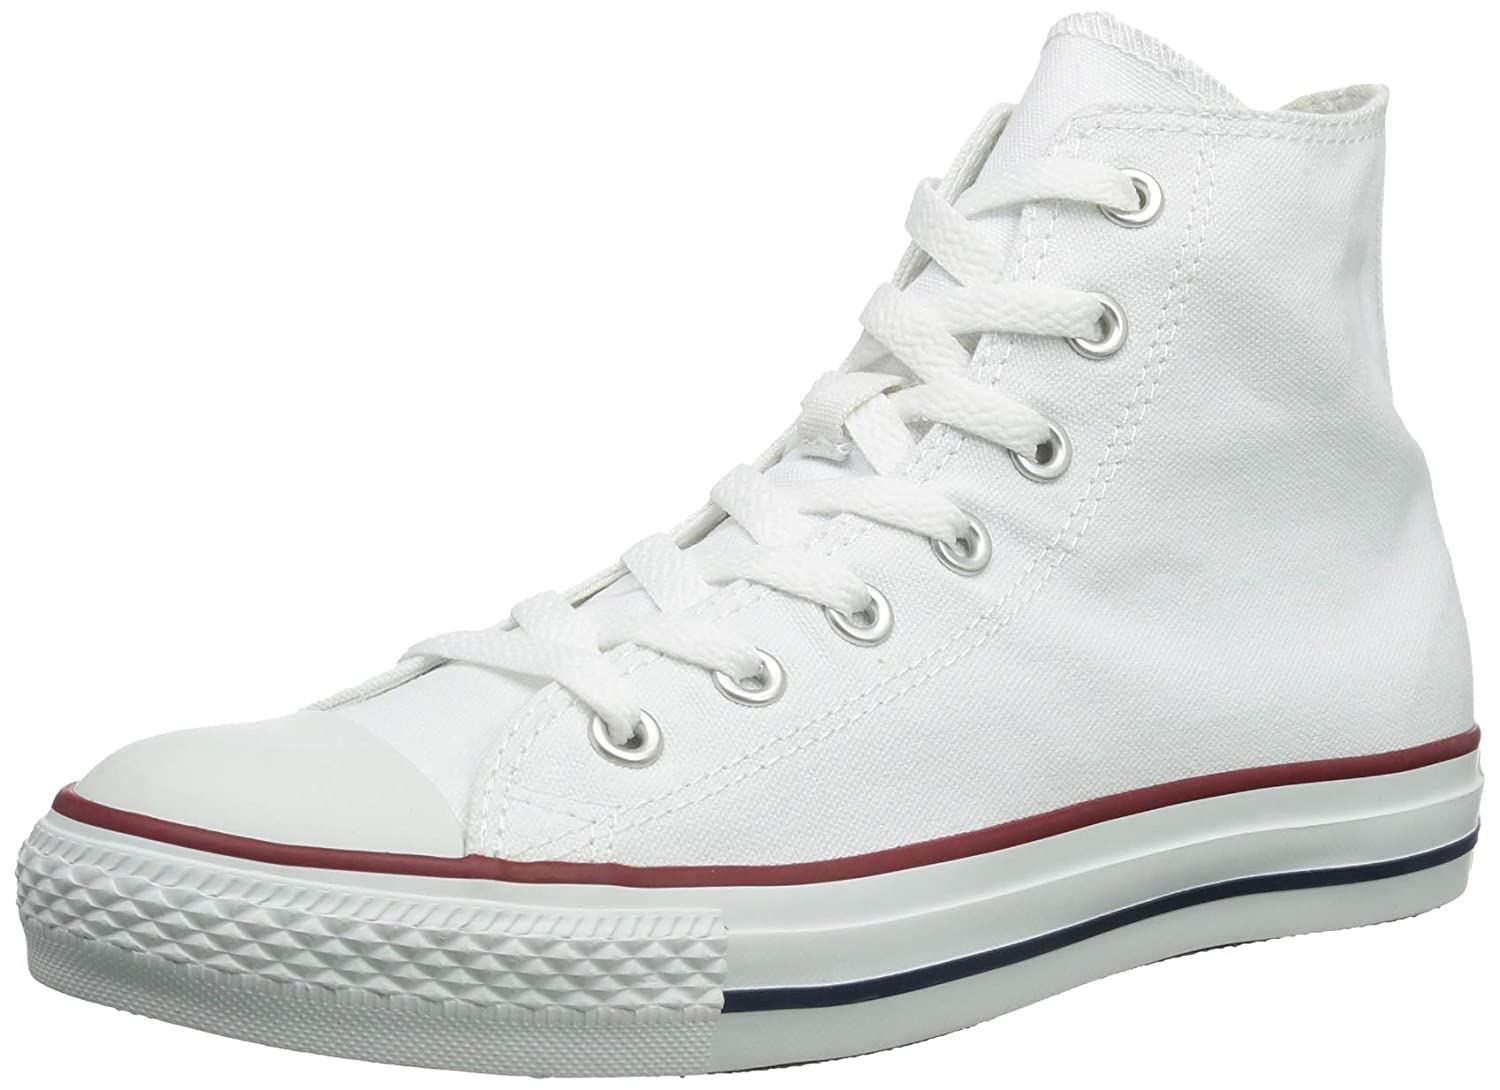 441ae0724 Converse Chuck Taylor All Star High Top Sneaker